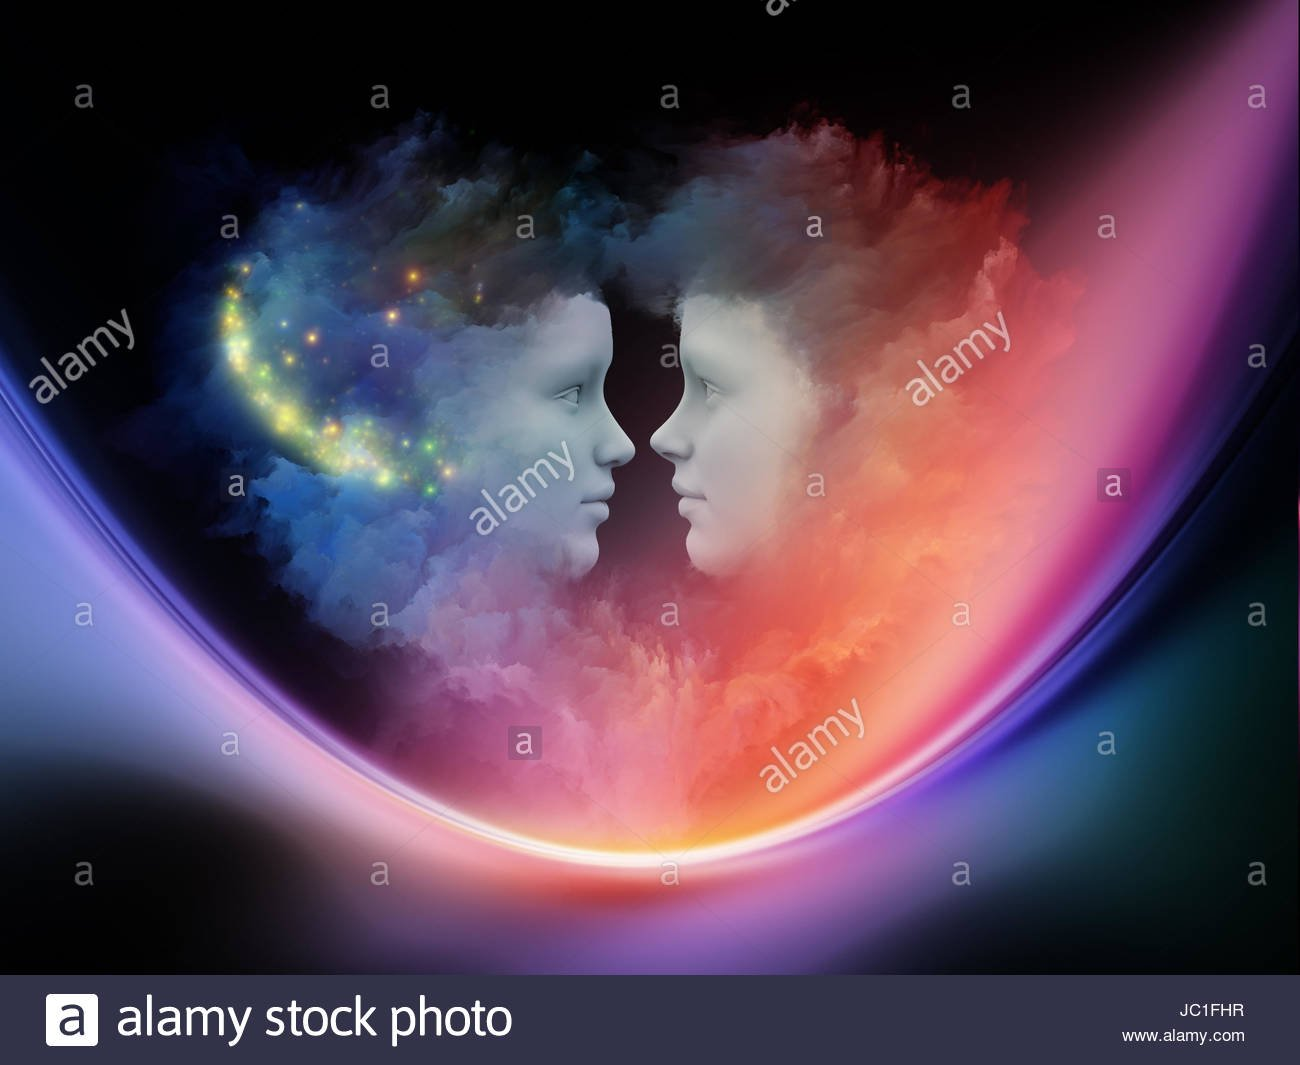 Dreaming Heart series Artistic background made of Human profiles 1300x1065